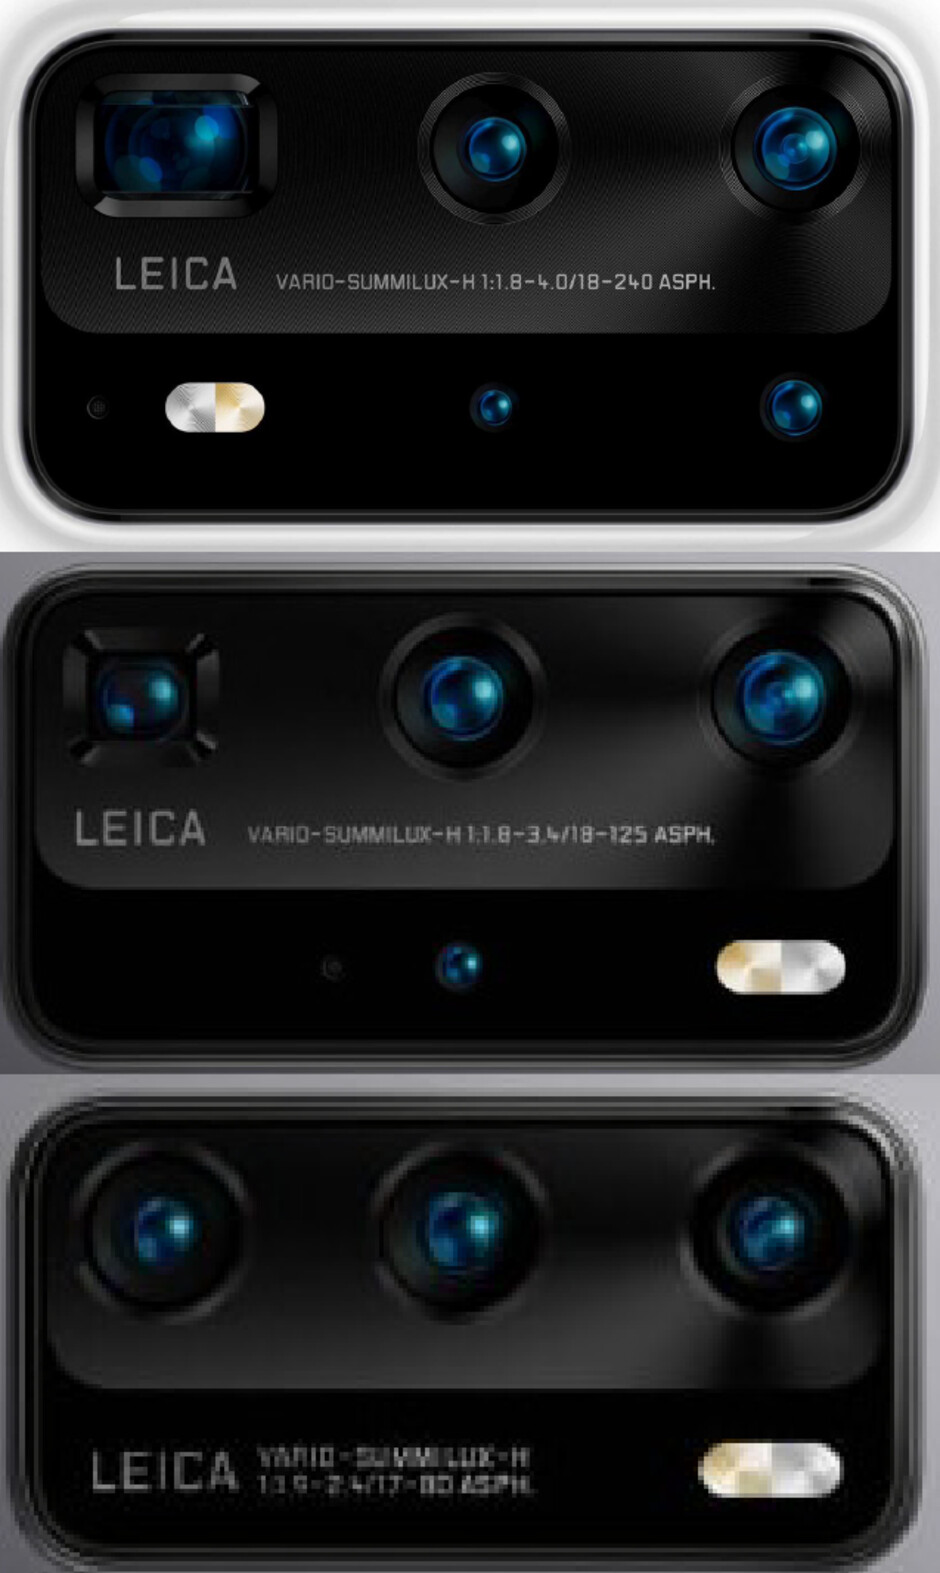 Premium Huawei P40 Pro variant leaks with five cameras